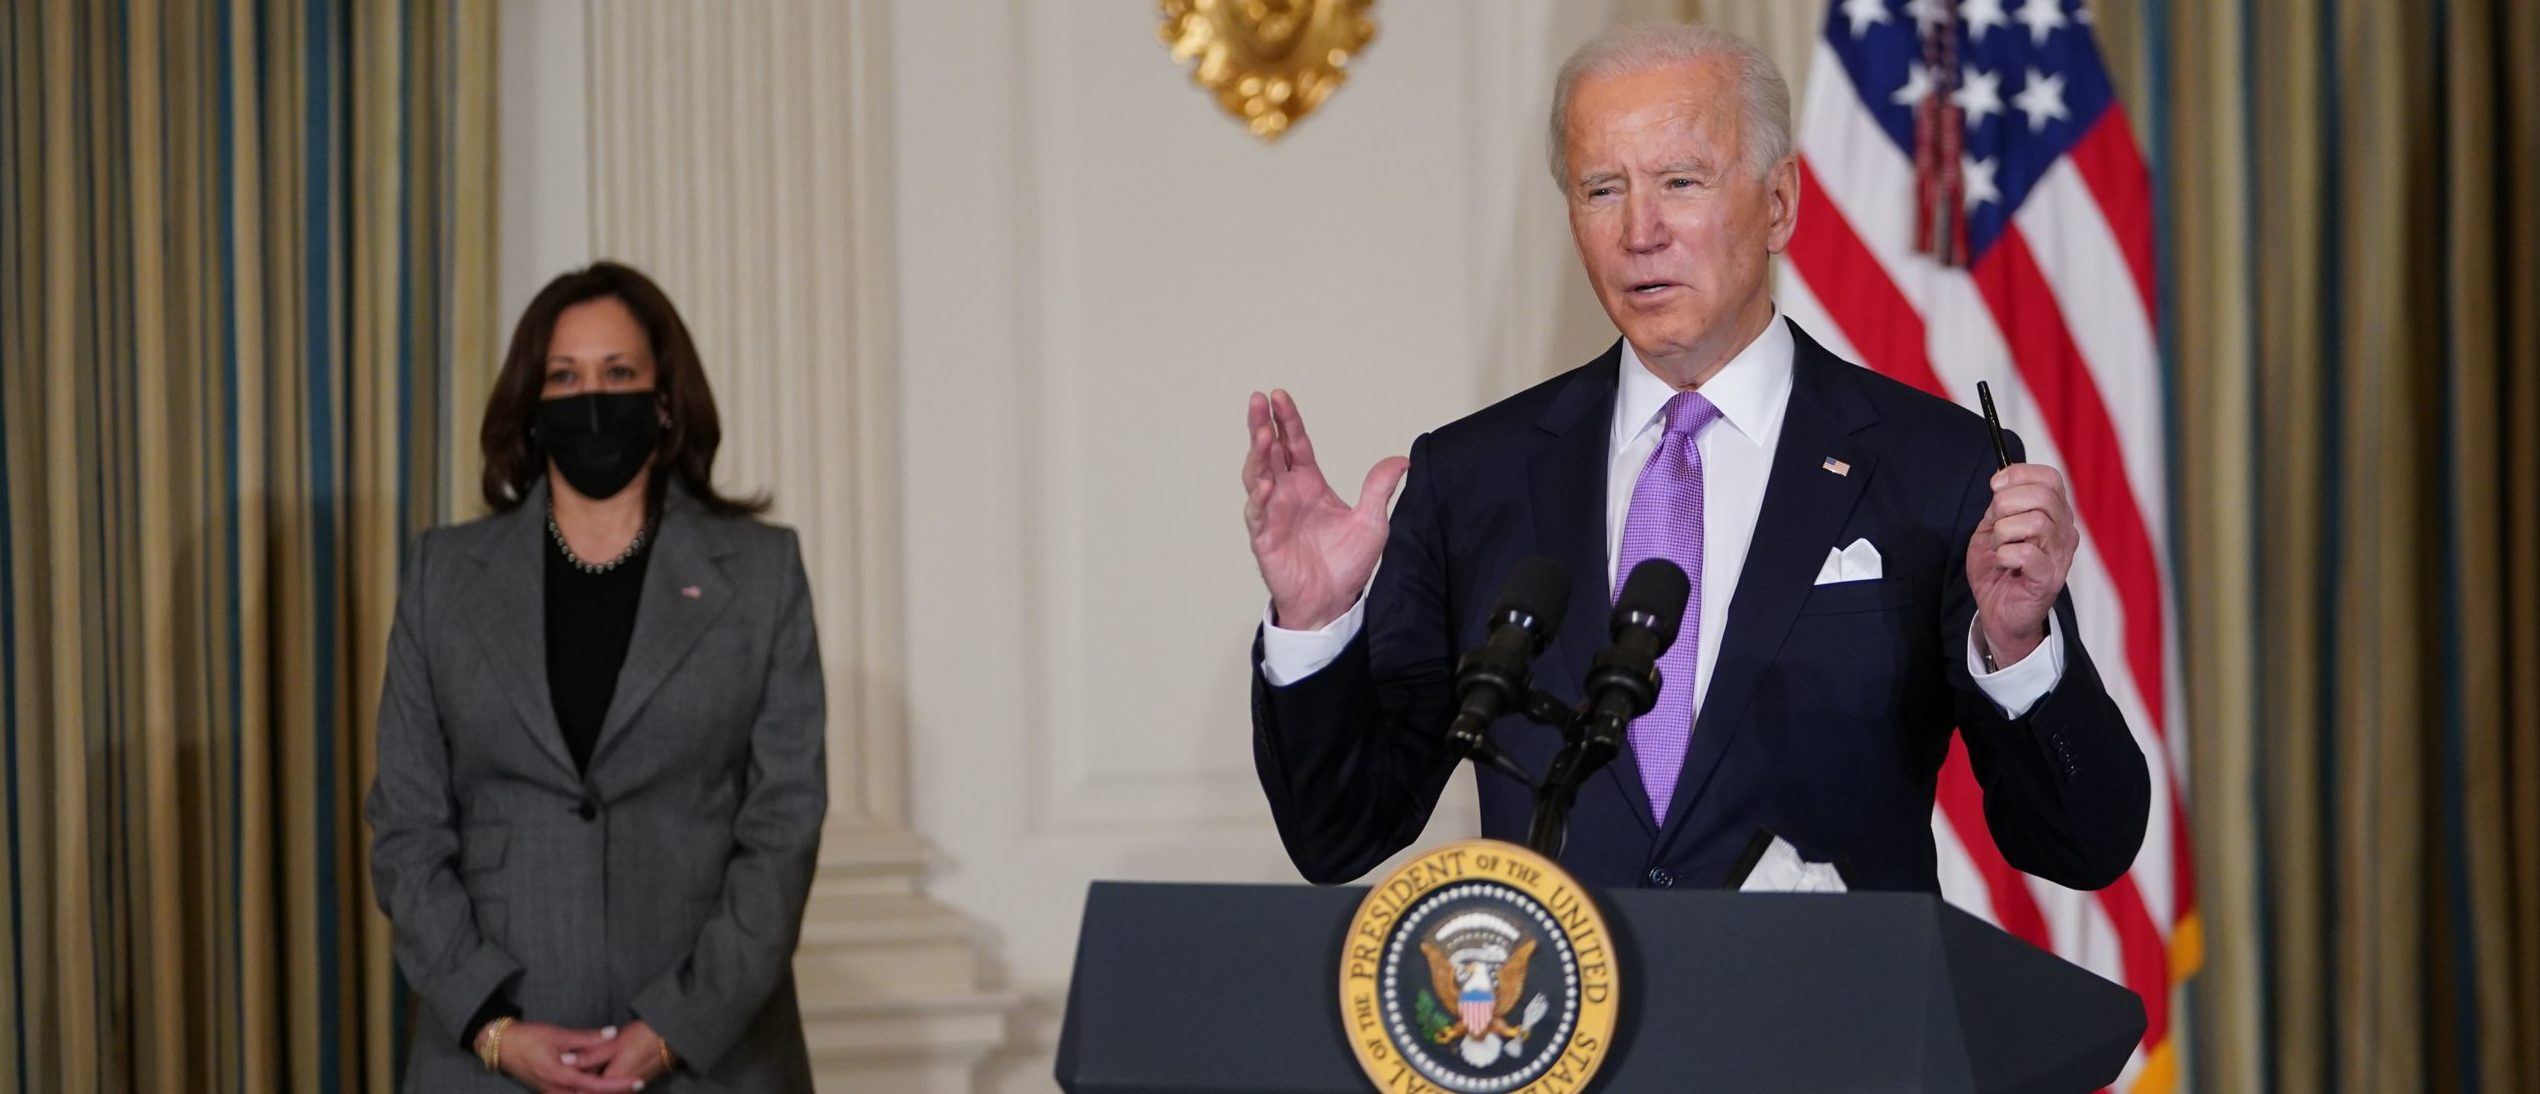 'Insulting': Biden, Harris Criticized For Memorial Day Weekend Tweets That Failed To Mention Fallen Soldiers thumbnail